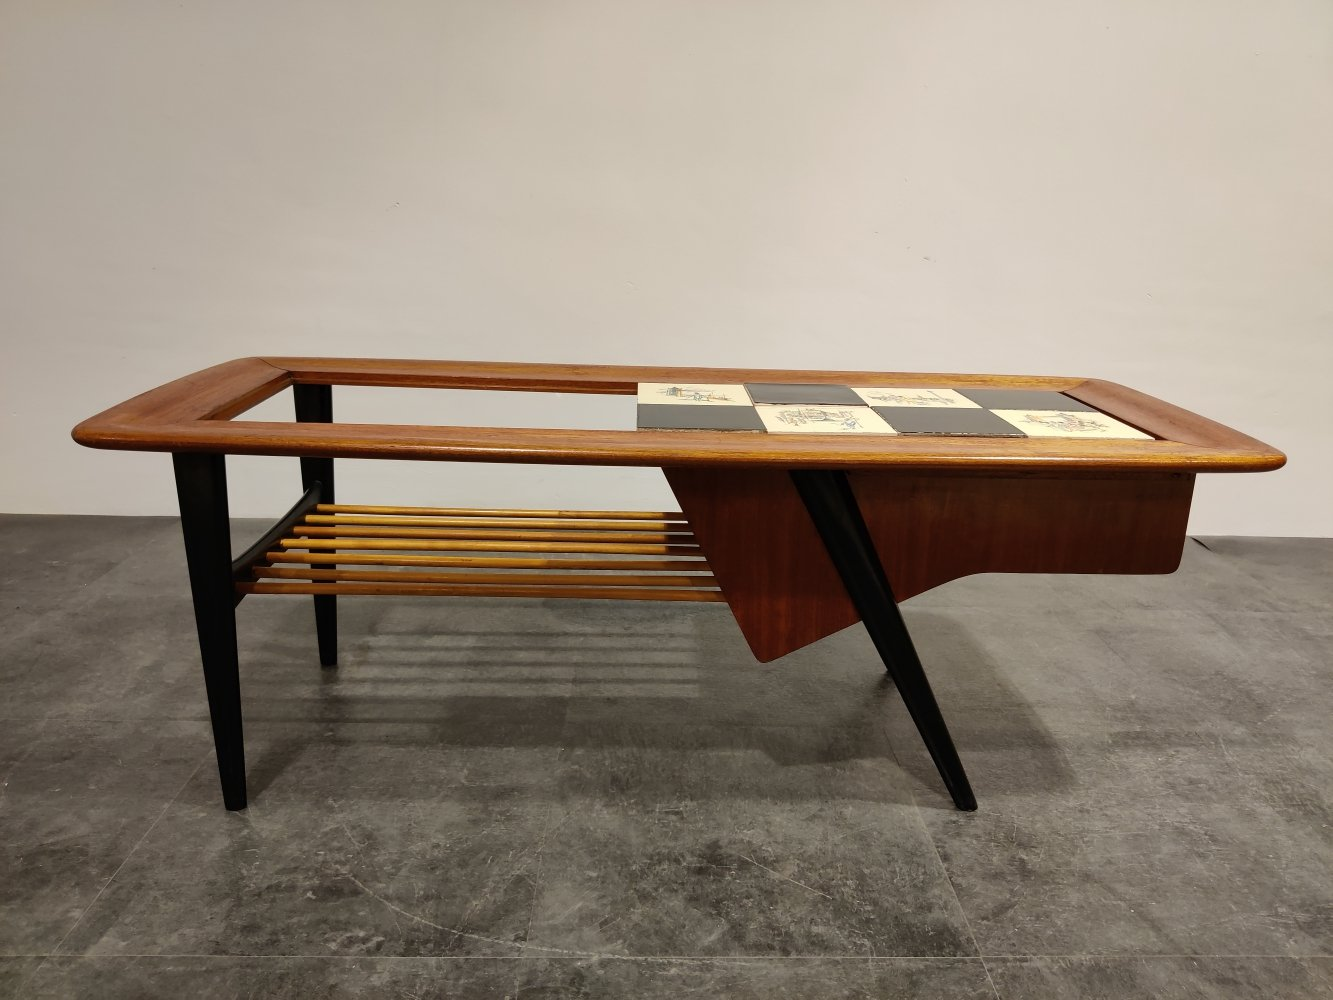 Vintage hidden bar coffee table by Alfred Hendrickx for Belfom, 1950s